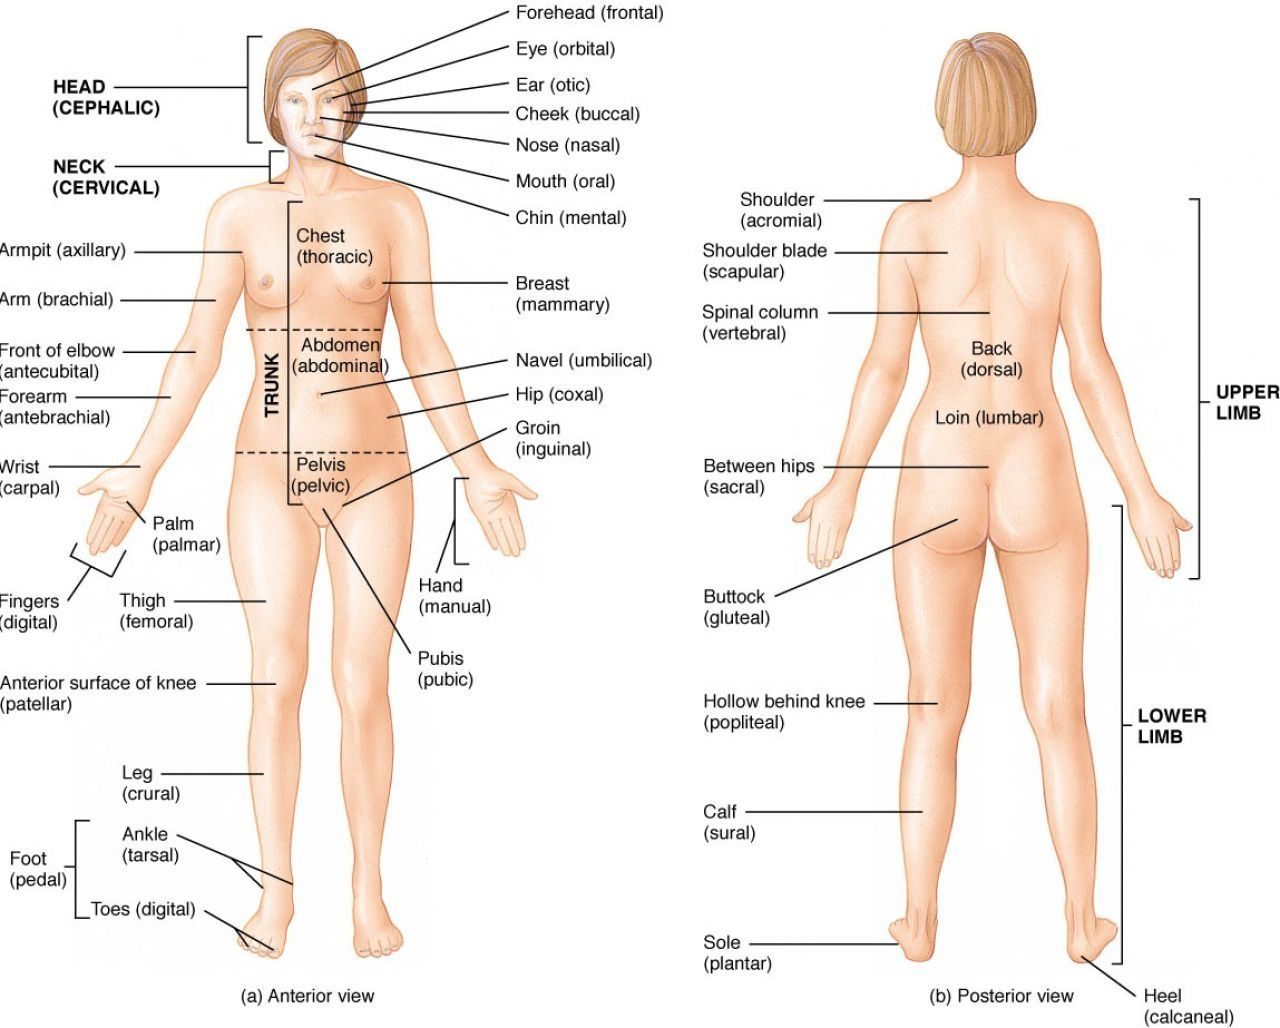 pin by iftikhar hussain on nbbbb pinterest anatomy human body Human Body Label picture of body parts body diagram human anatomy chart human body anatomy